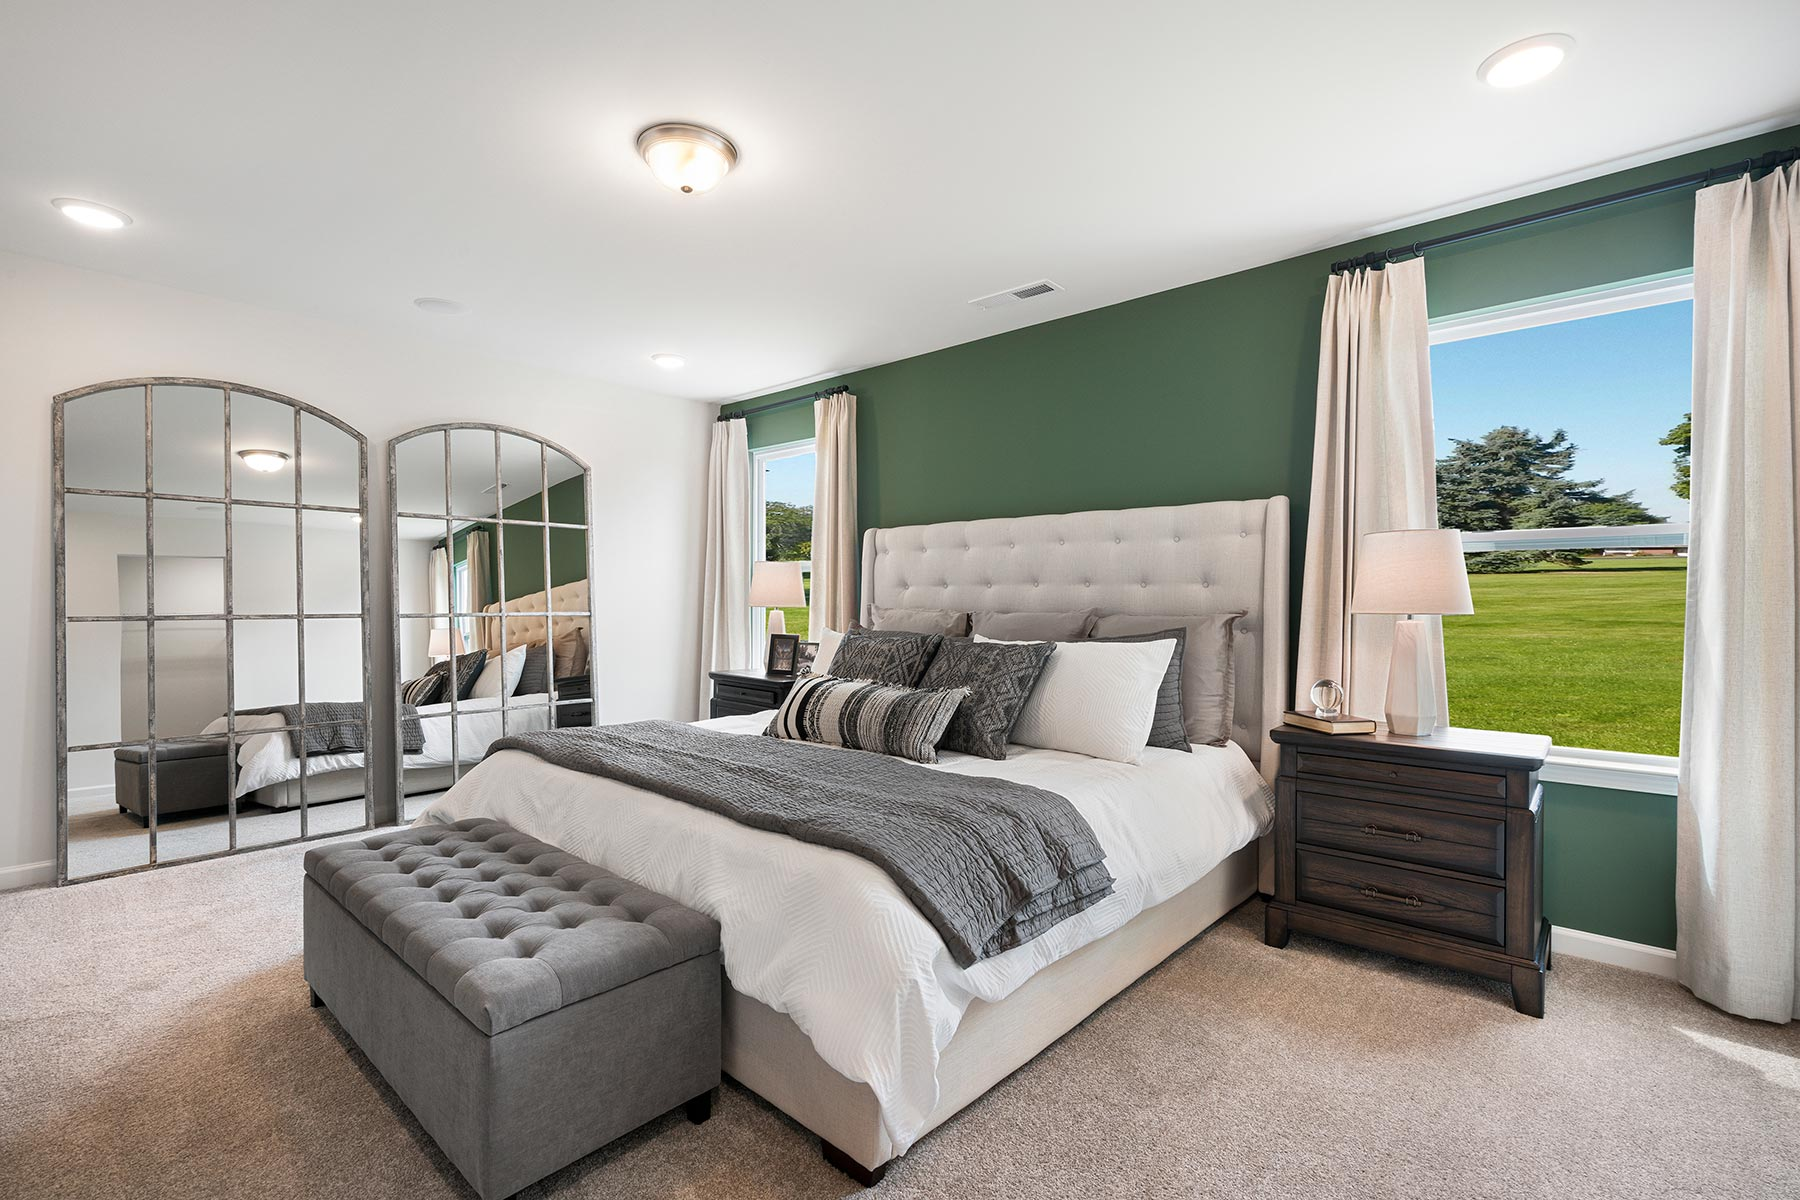 Gaines Plan Bedroom at Bedford at Flowers Plantation in Clayton North Carolina by Mattamy Homes